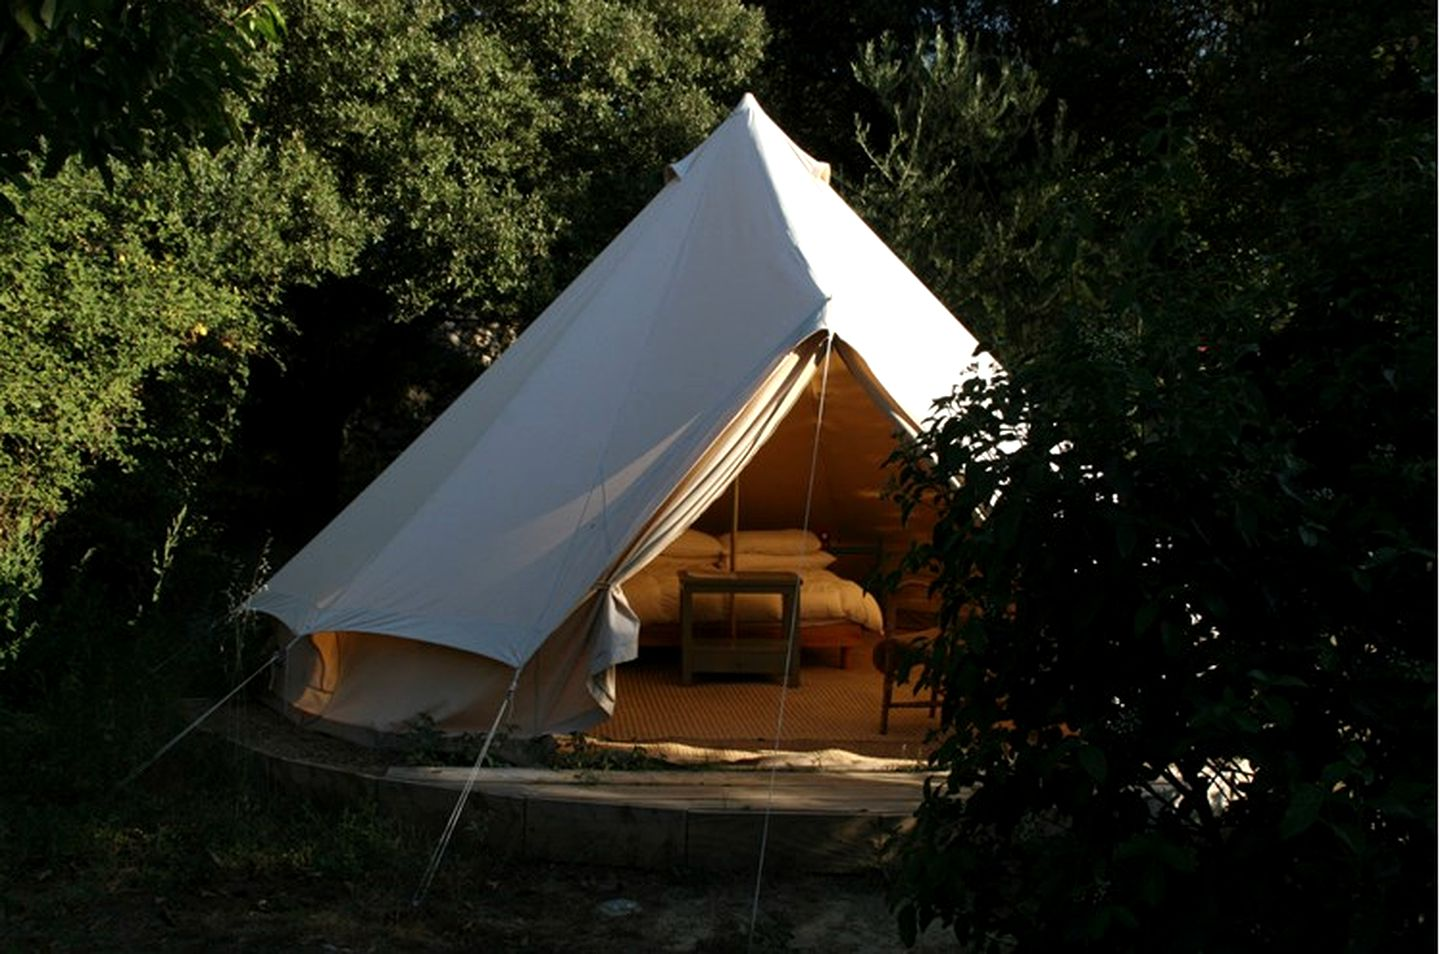 Bell Tents (Uzes, Occitanie, France)